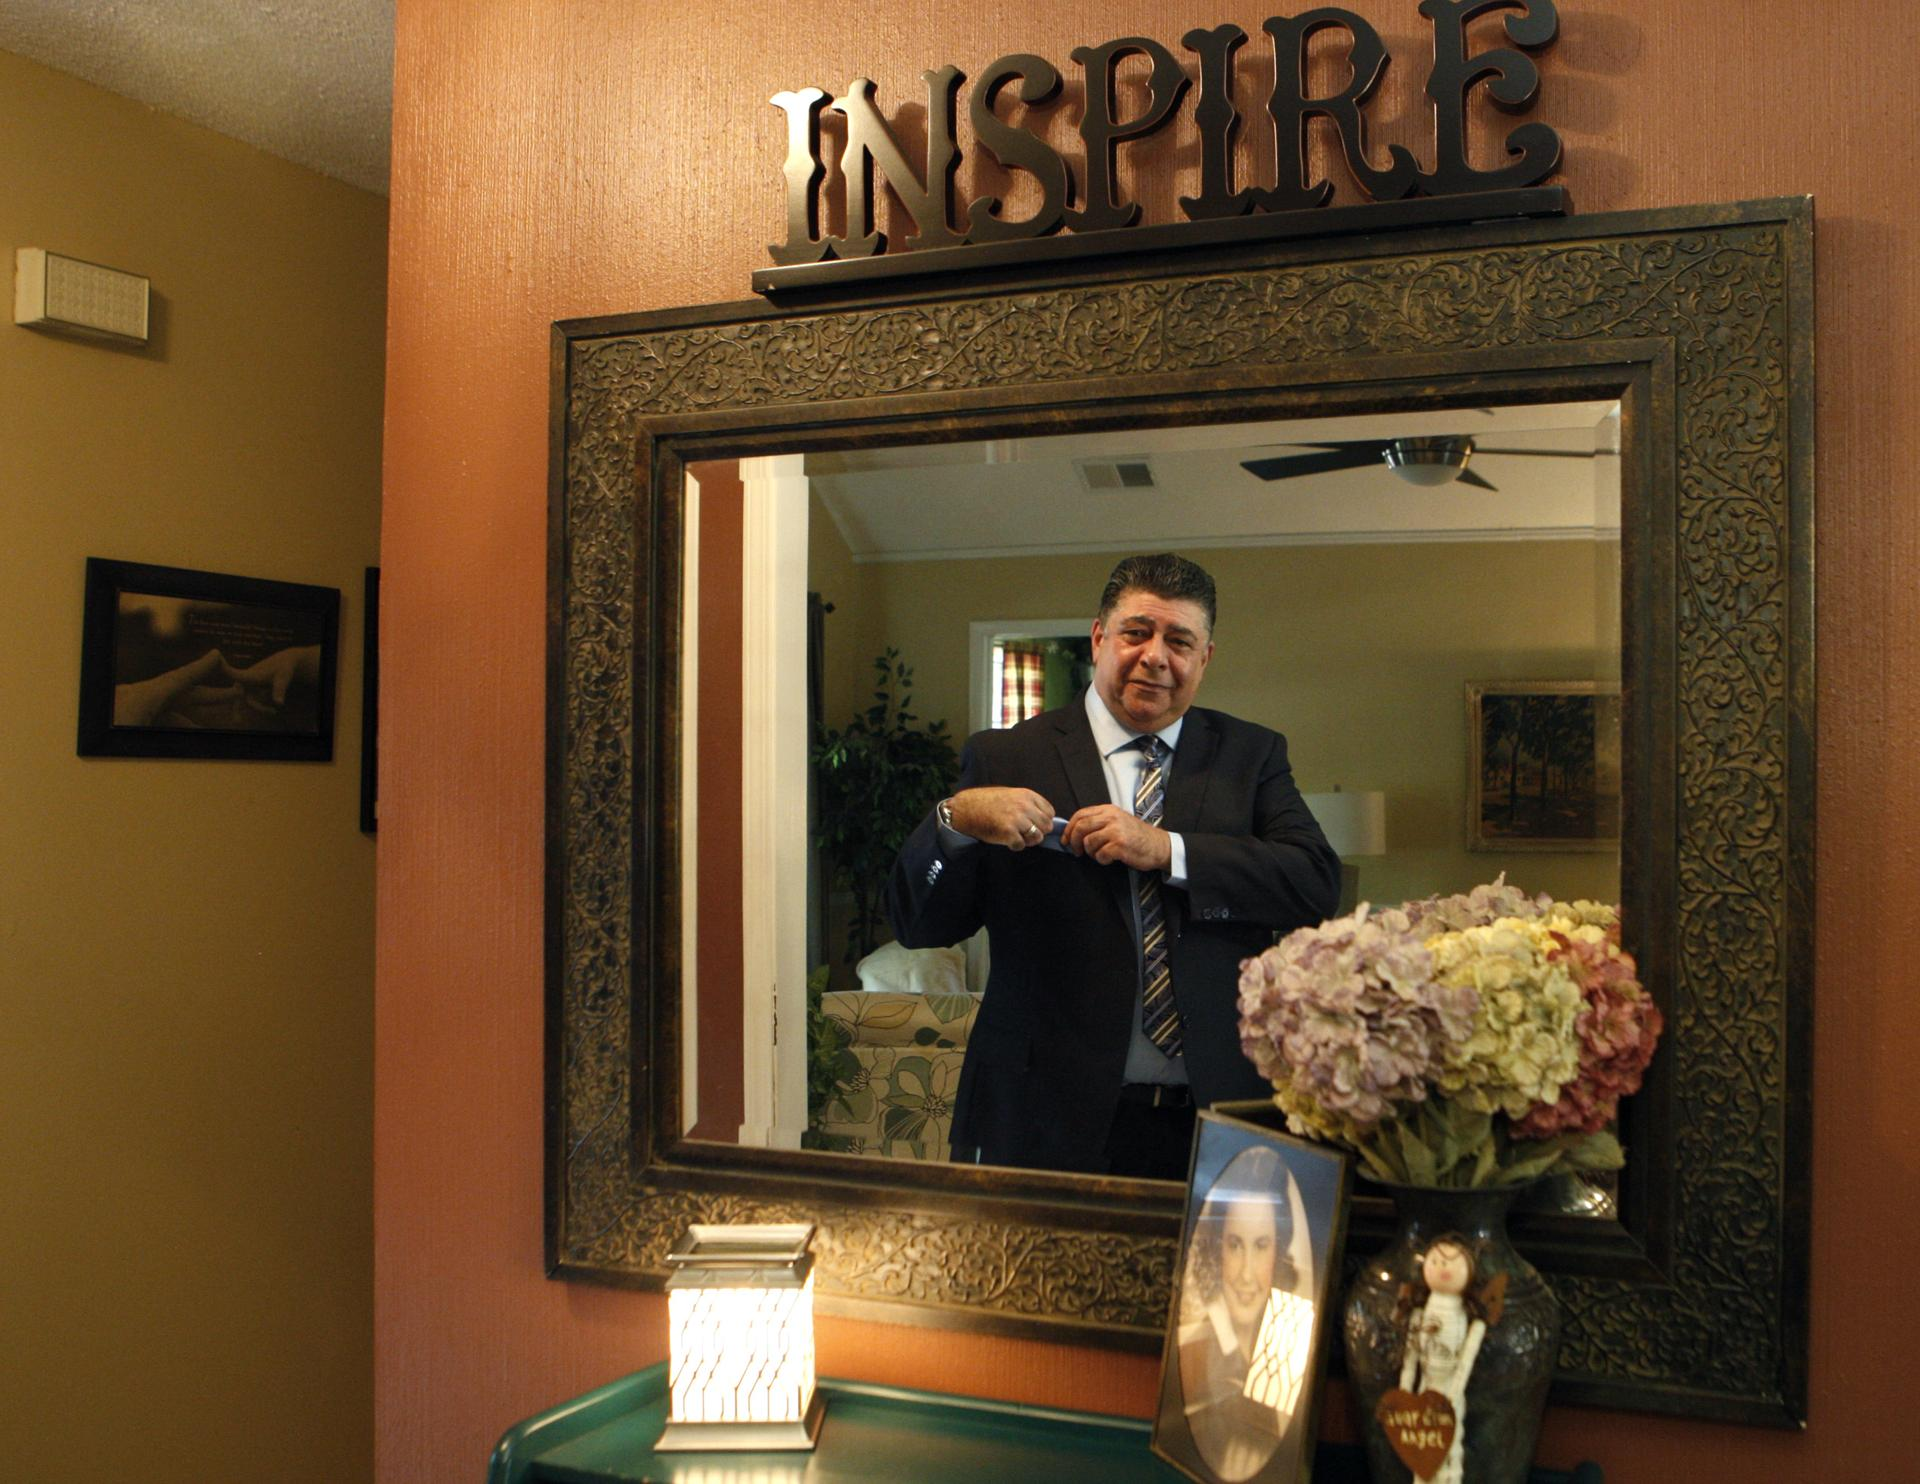 Esposito checked himself in a mirror before leaving for church.